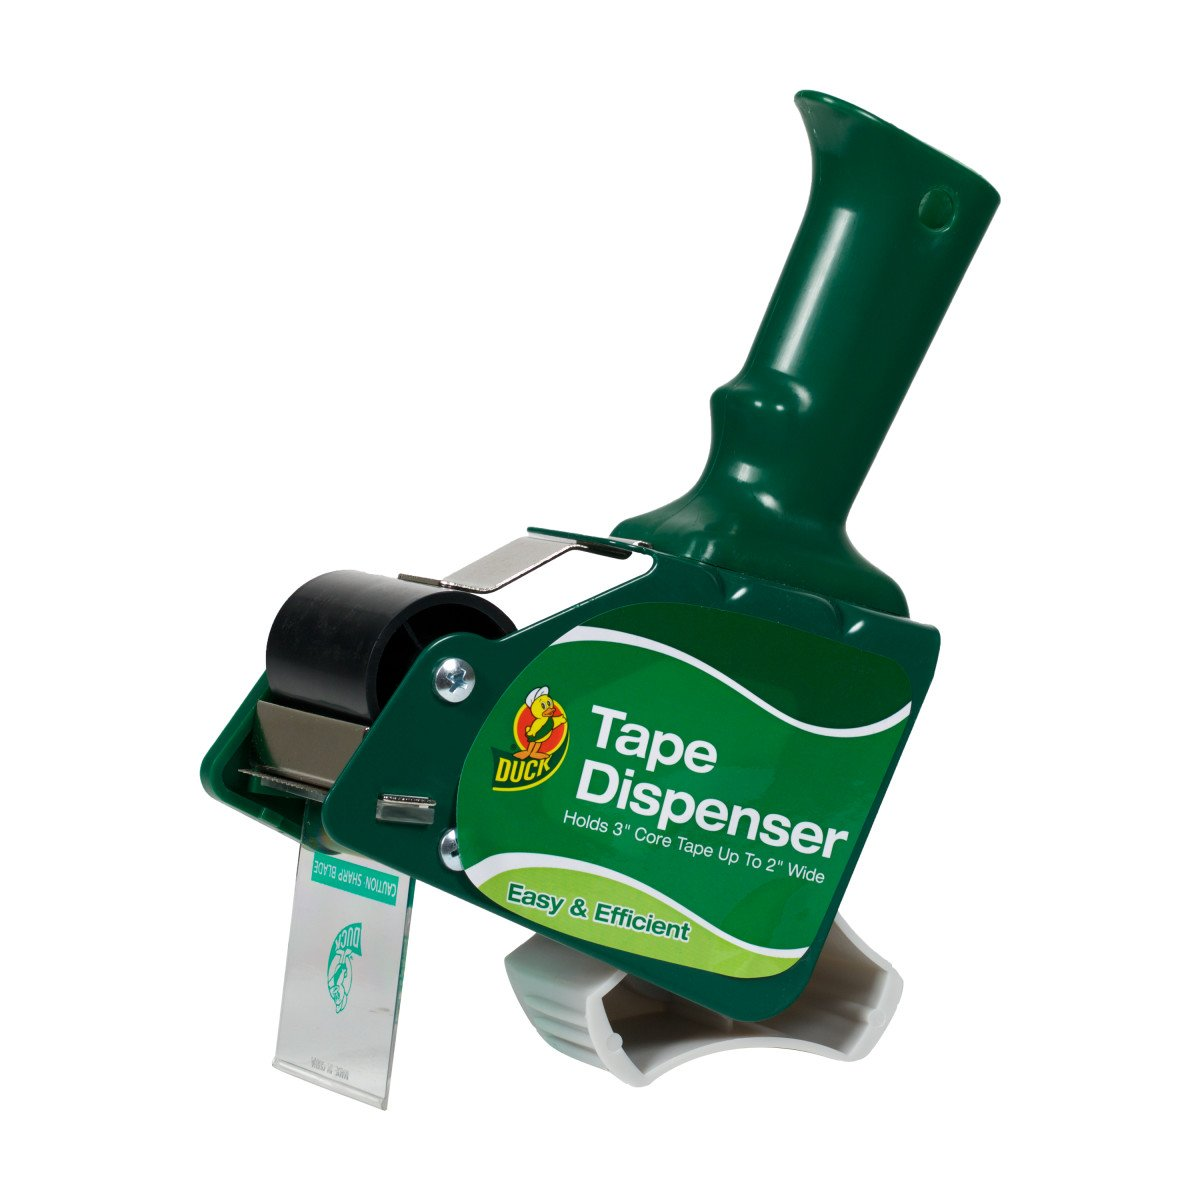 Duck Brand Standard Tape Gun Dispenser For Packing Tape Rolls Up To 2 Inch Wide (394600)